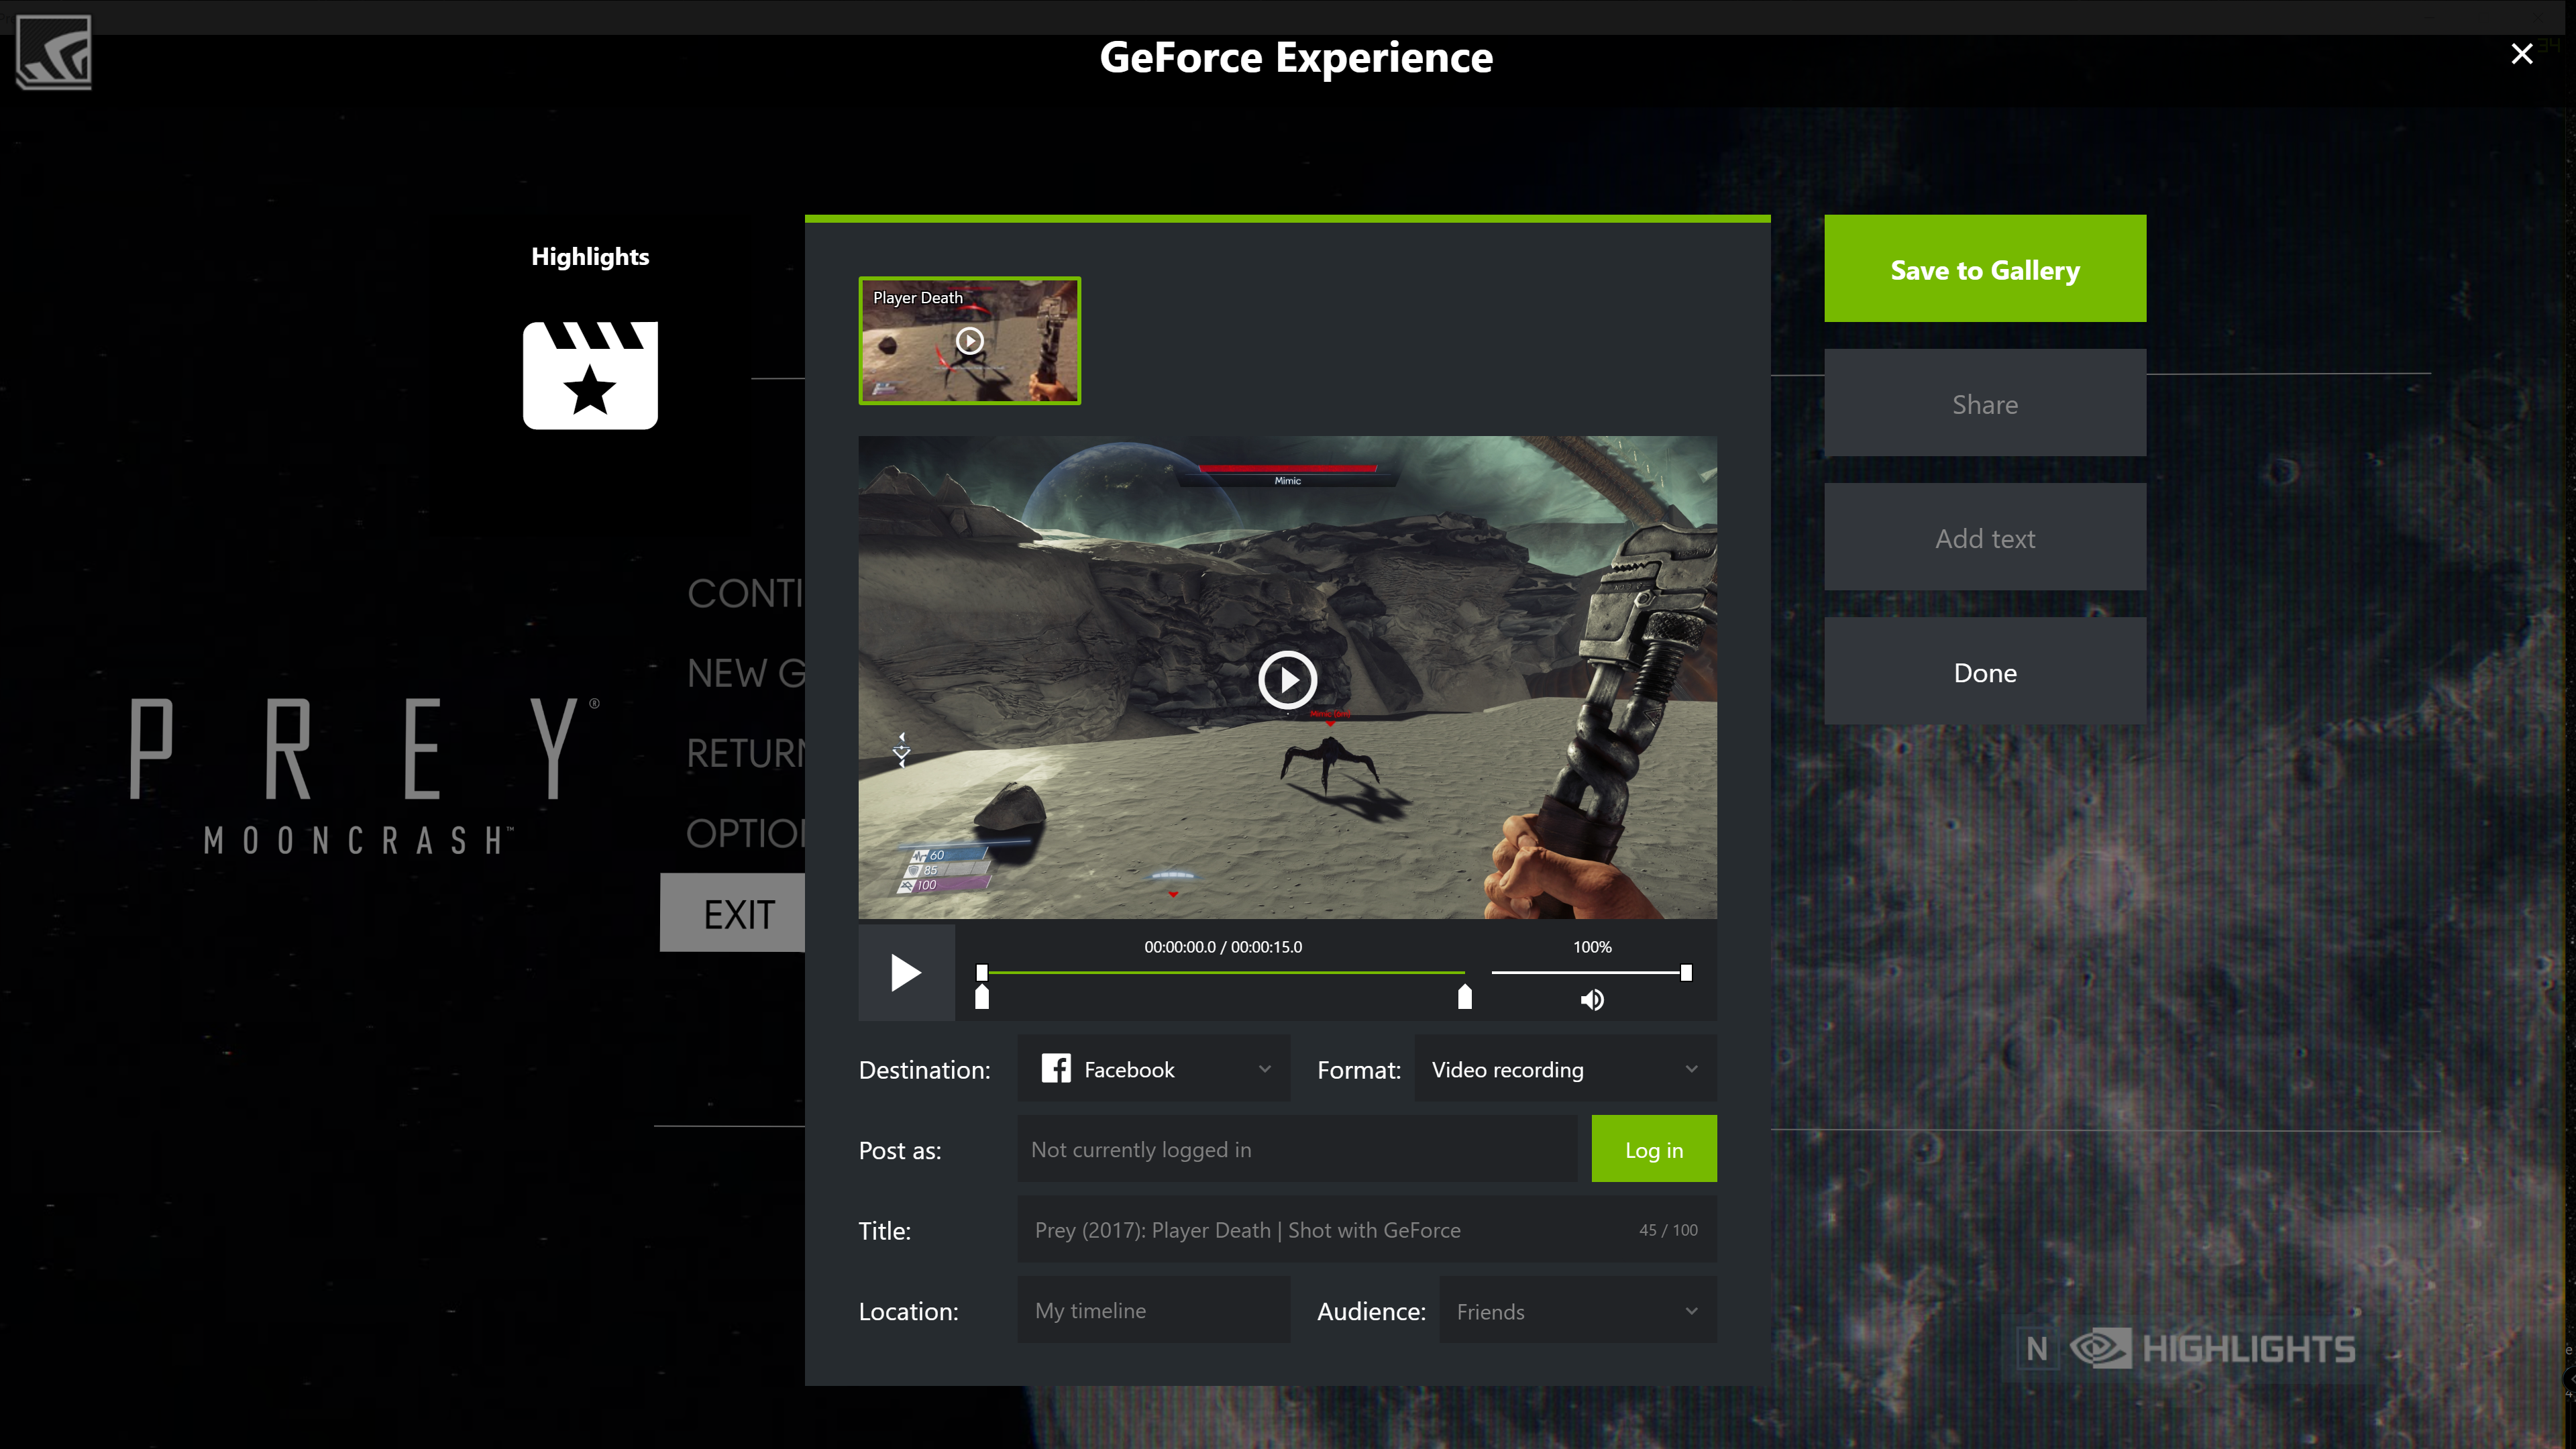 GeForce Experience Is Bringing New Ray Tracing And AI Tech